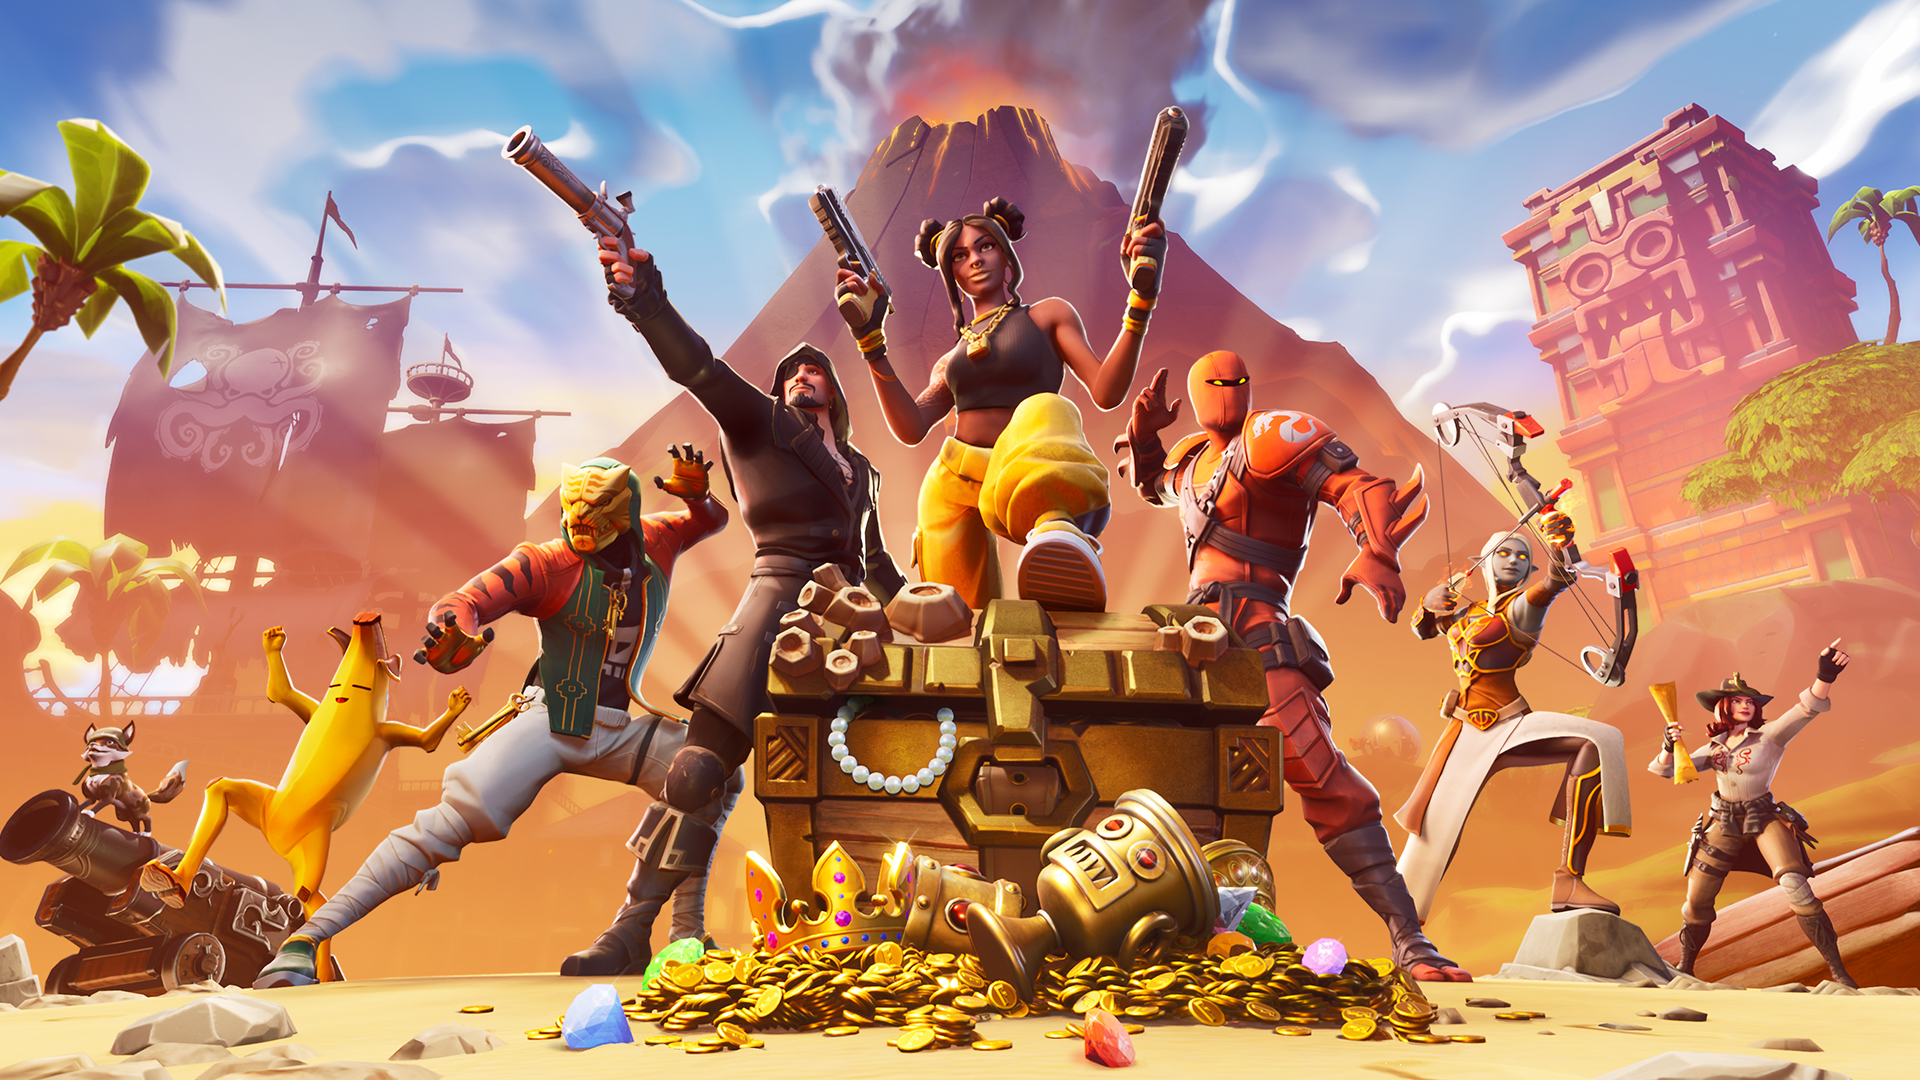 Fortnite's newest glitch launches players out of a dumpster, into the sky